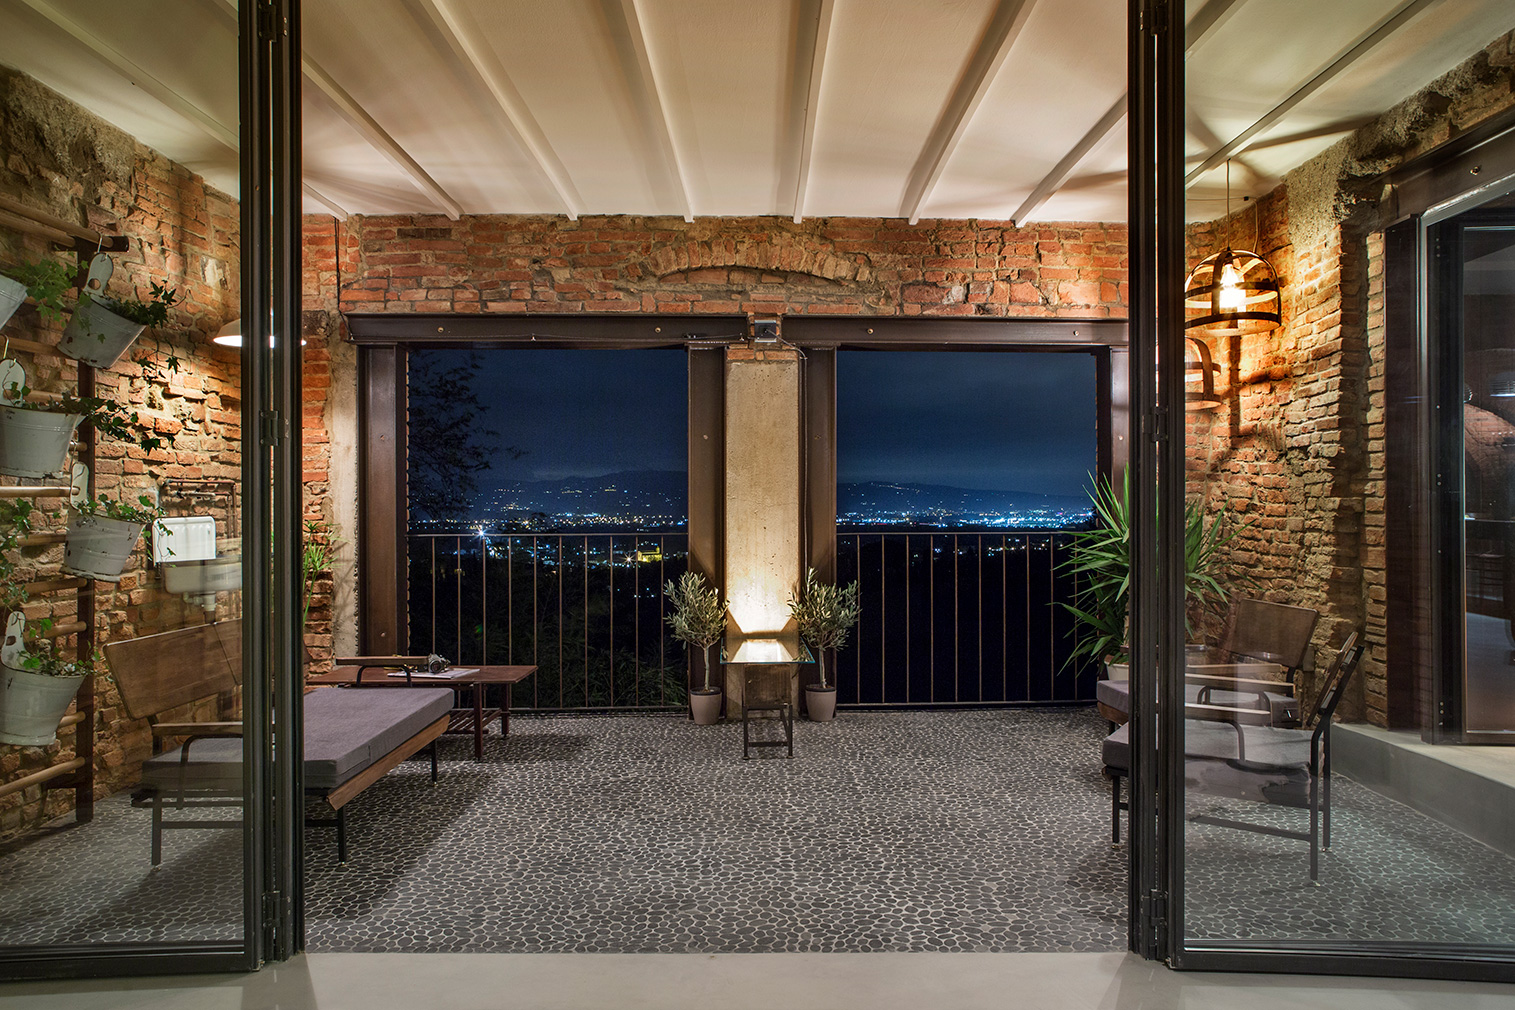 New full-height glass doors lead to a shaded balcony area with pebbled floors